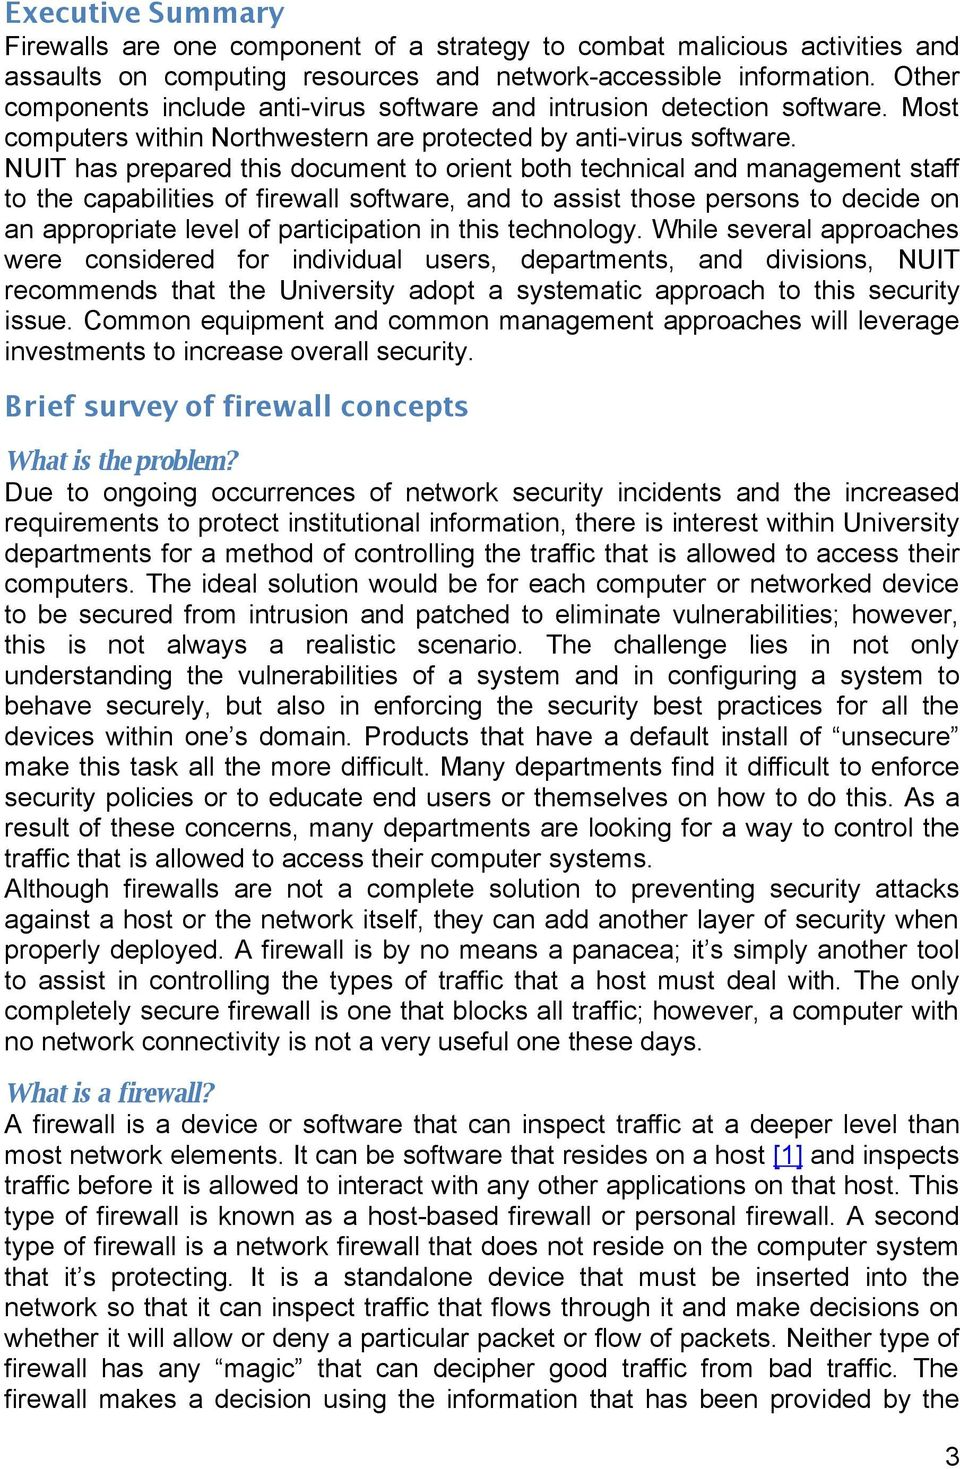 NUIT has prepared this document to orient both technical and management staff to the capabilities of firewall software, and to assist those persons to decide on an appropriate level of participation